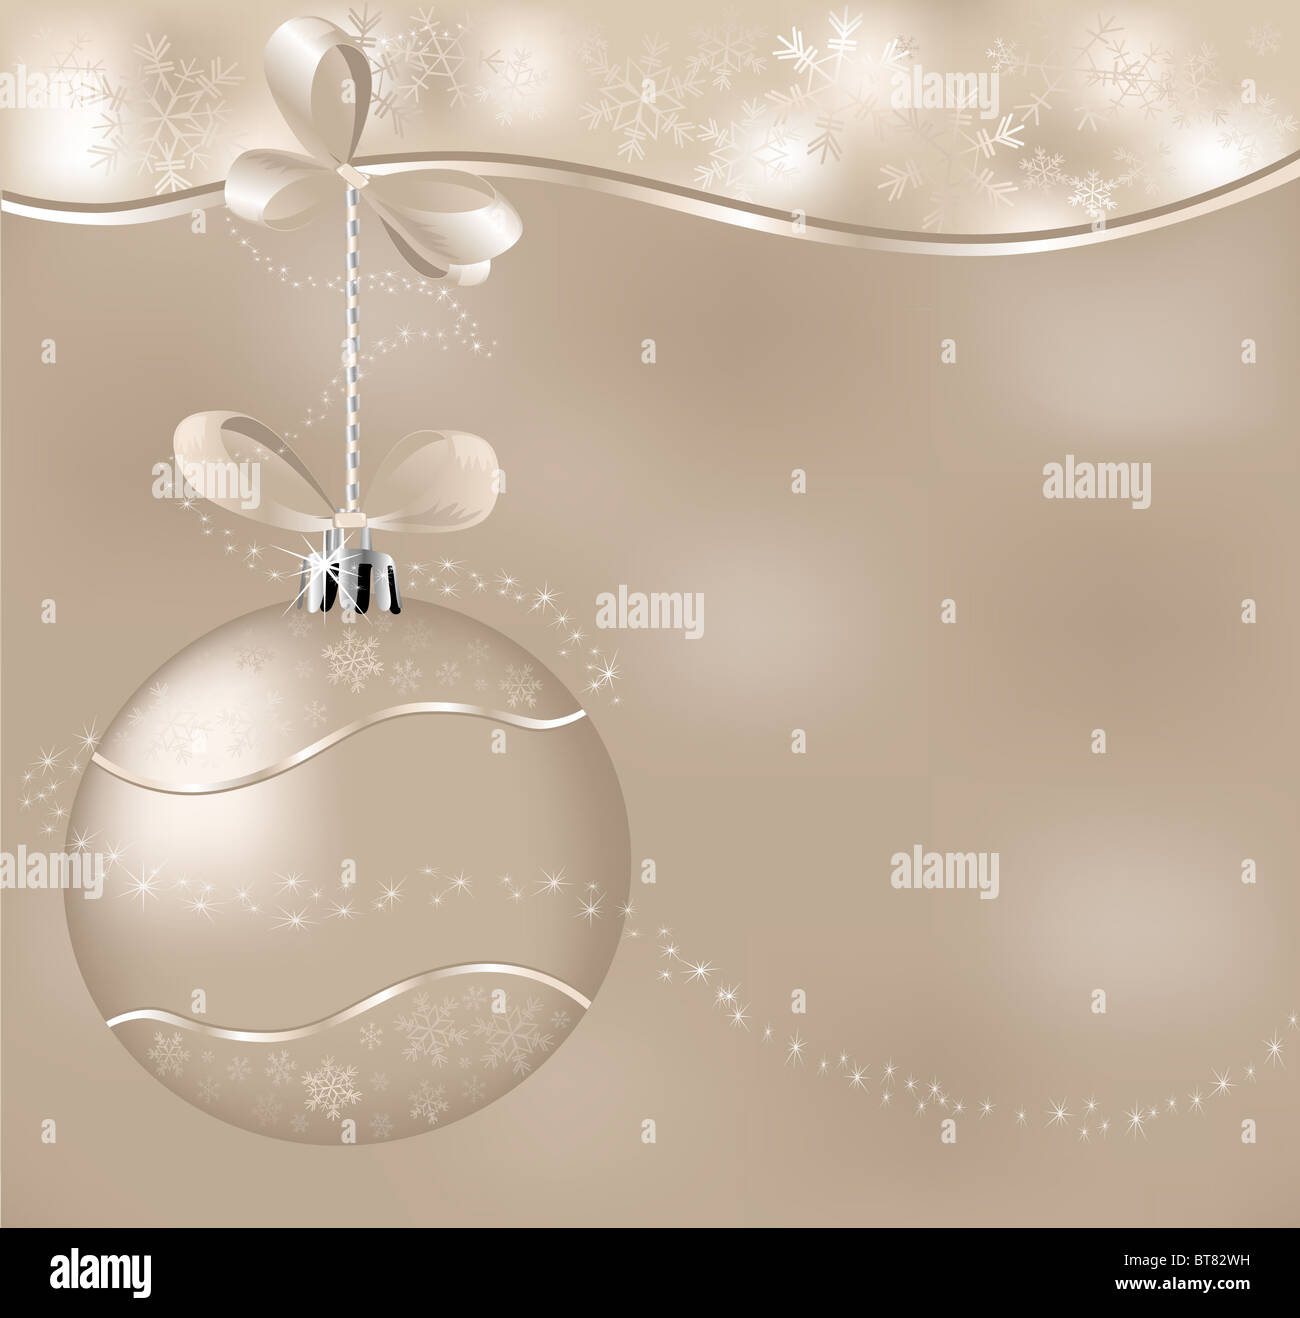 christmas background with one ball and asterisks - Stock Image